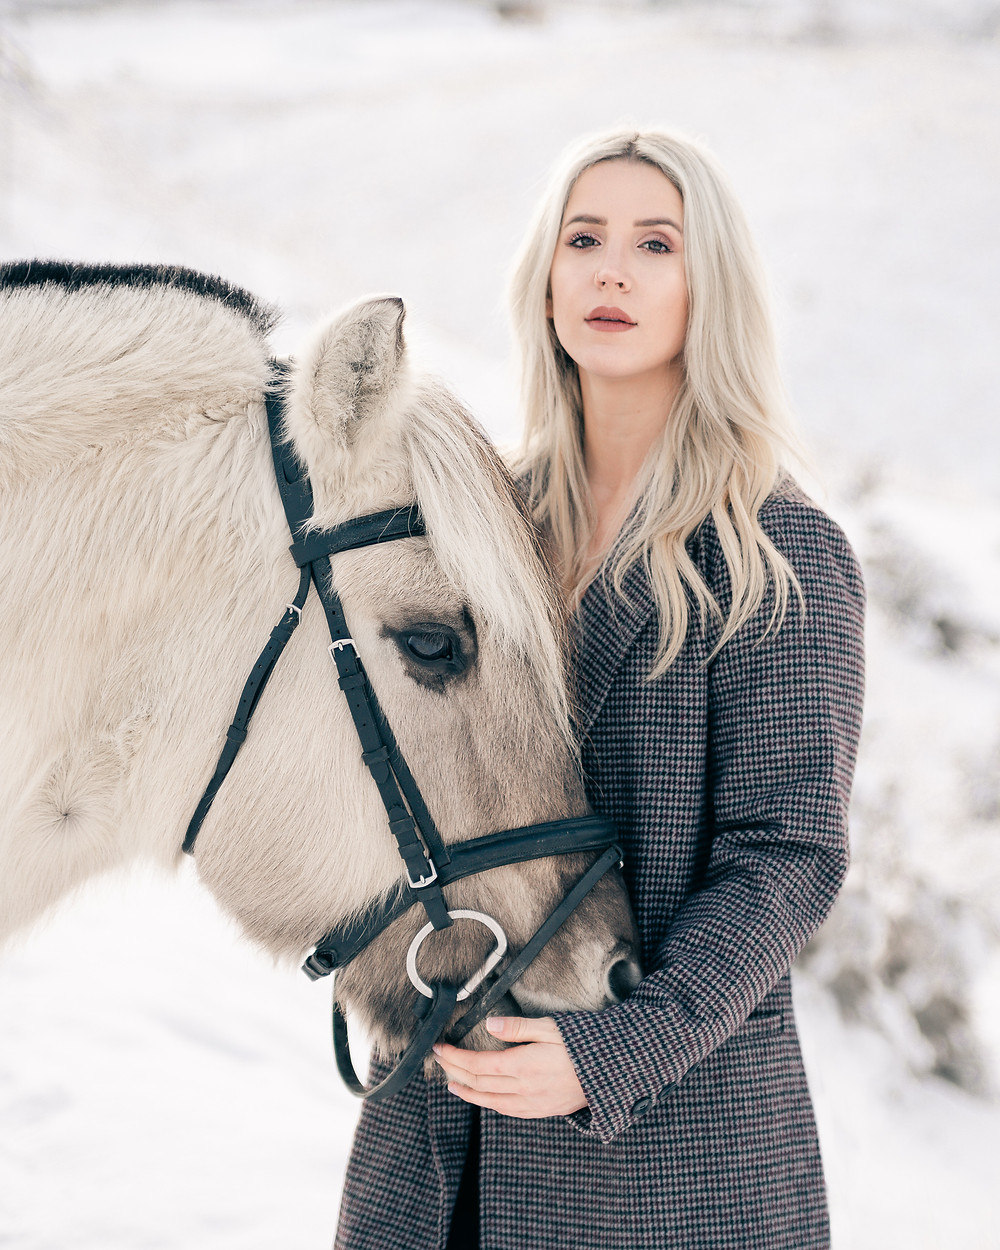 A blonde girl hugging her horse's head, on a winter day in Wenatchee, WA